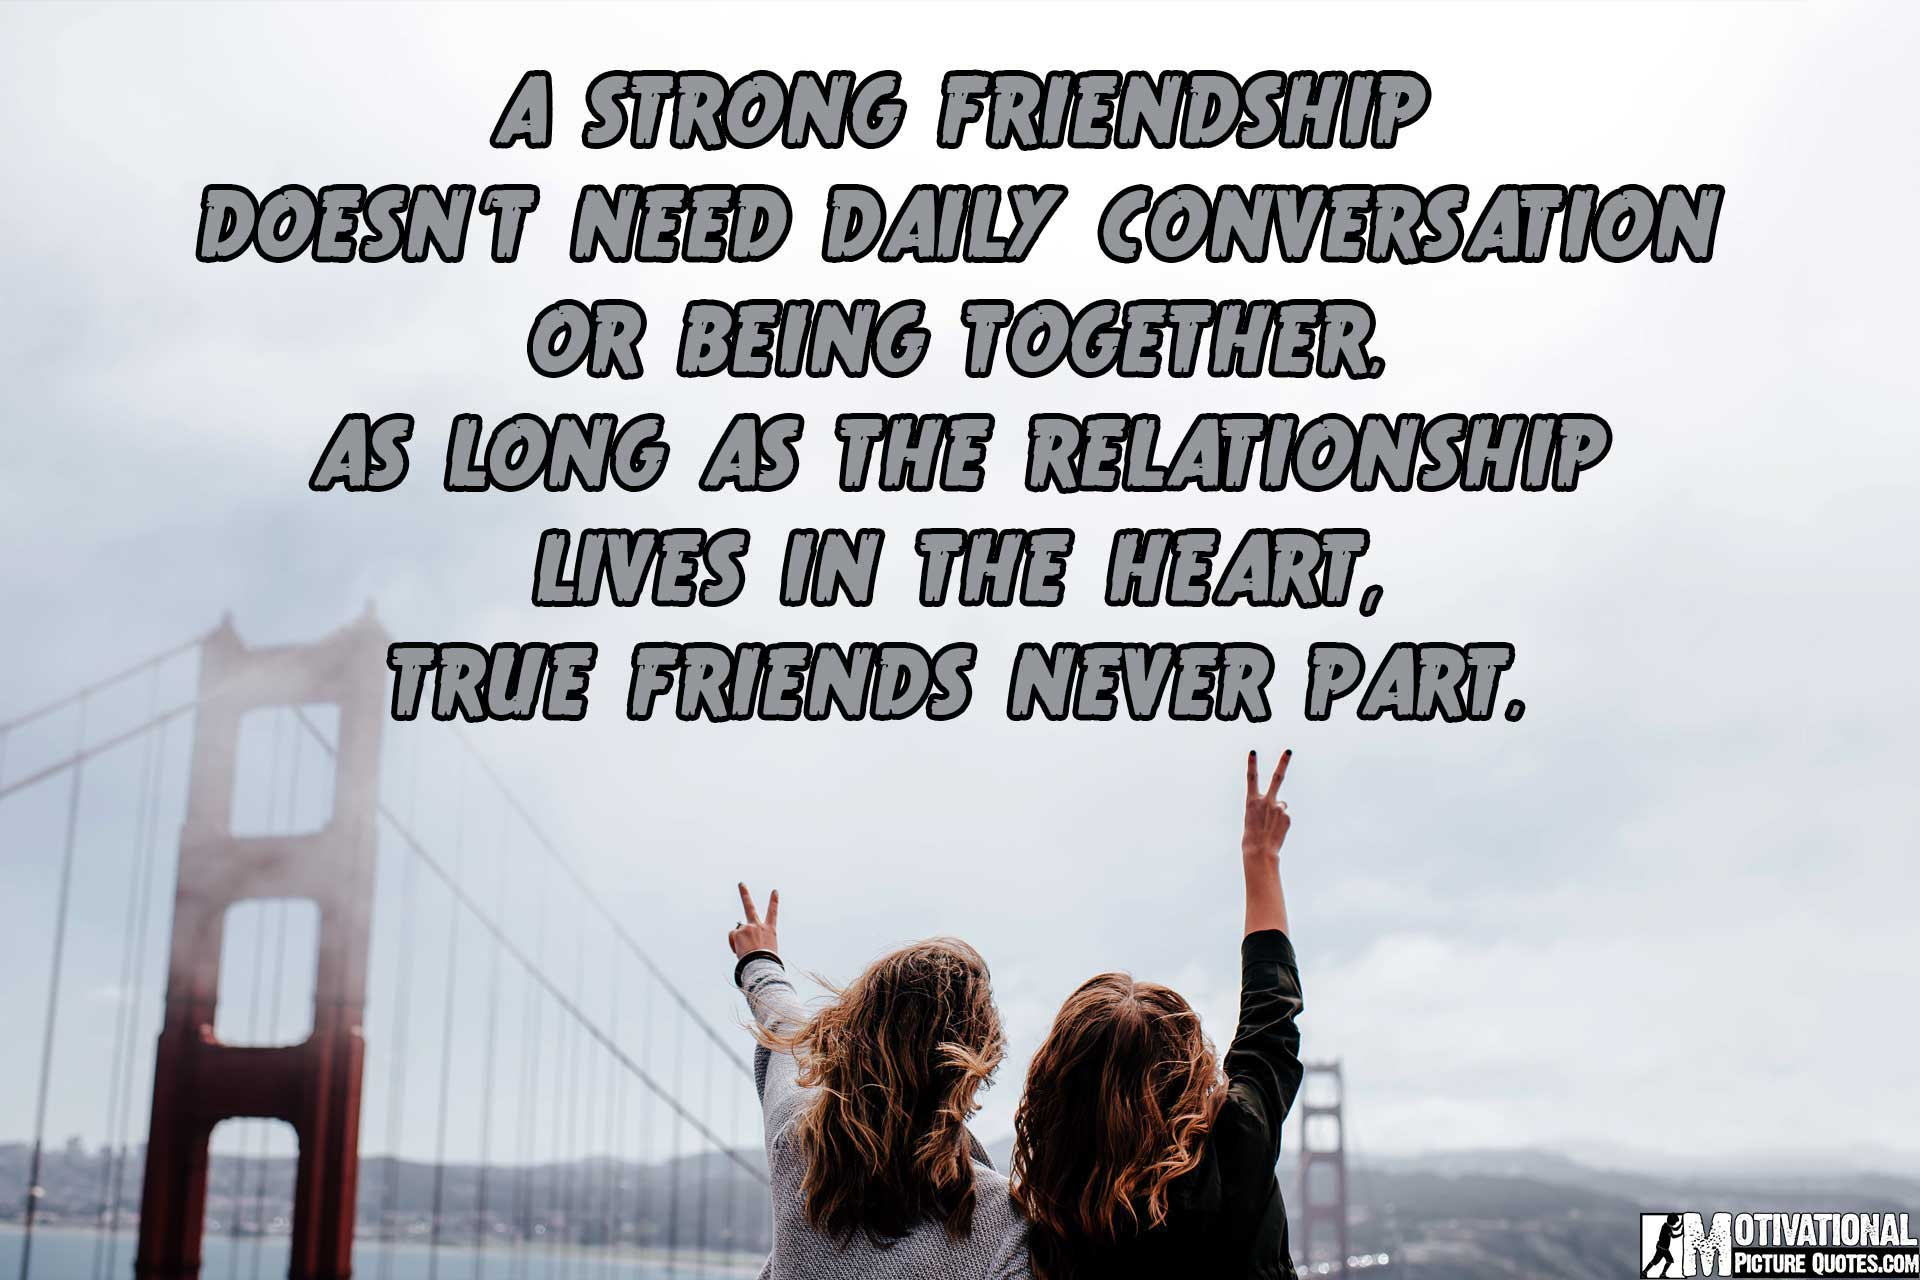 Wise Quotes About Friendship Delectable 25 Inspirational Friendship Quotes Images  Free Download